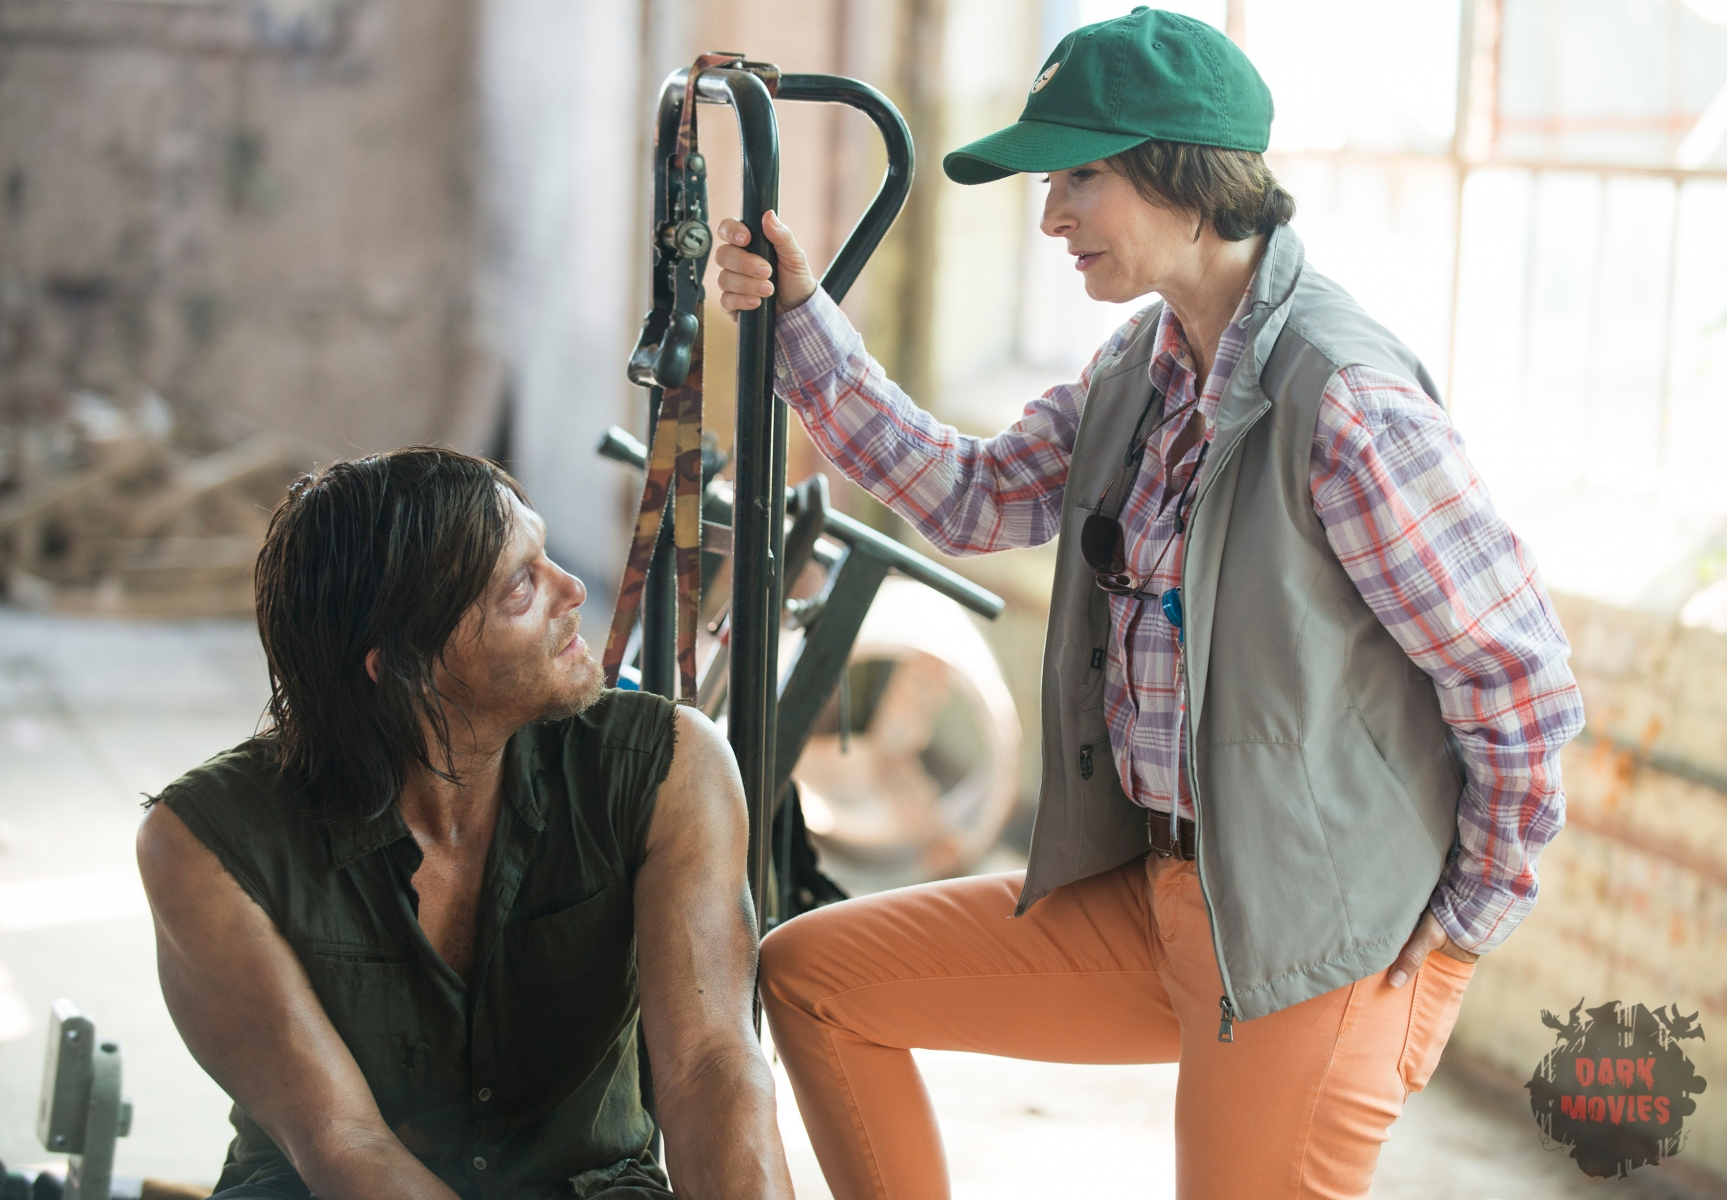 Norman Reedus and Gale Ann Hurd - The Walking Dead _ Season 5, Episode 8 _ BTS - Photo Credit: Gene Page/AMC